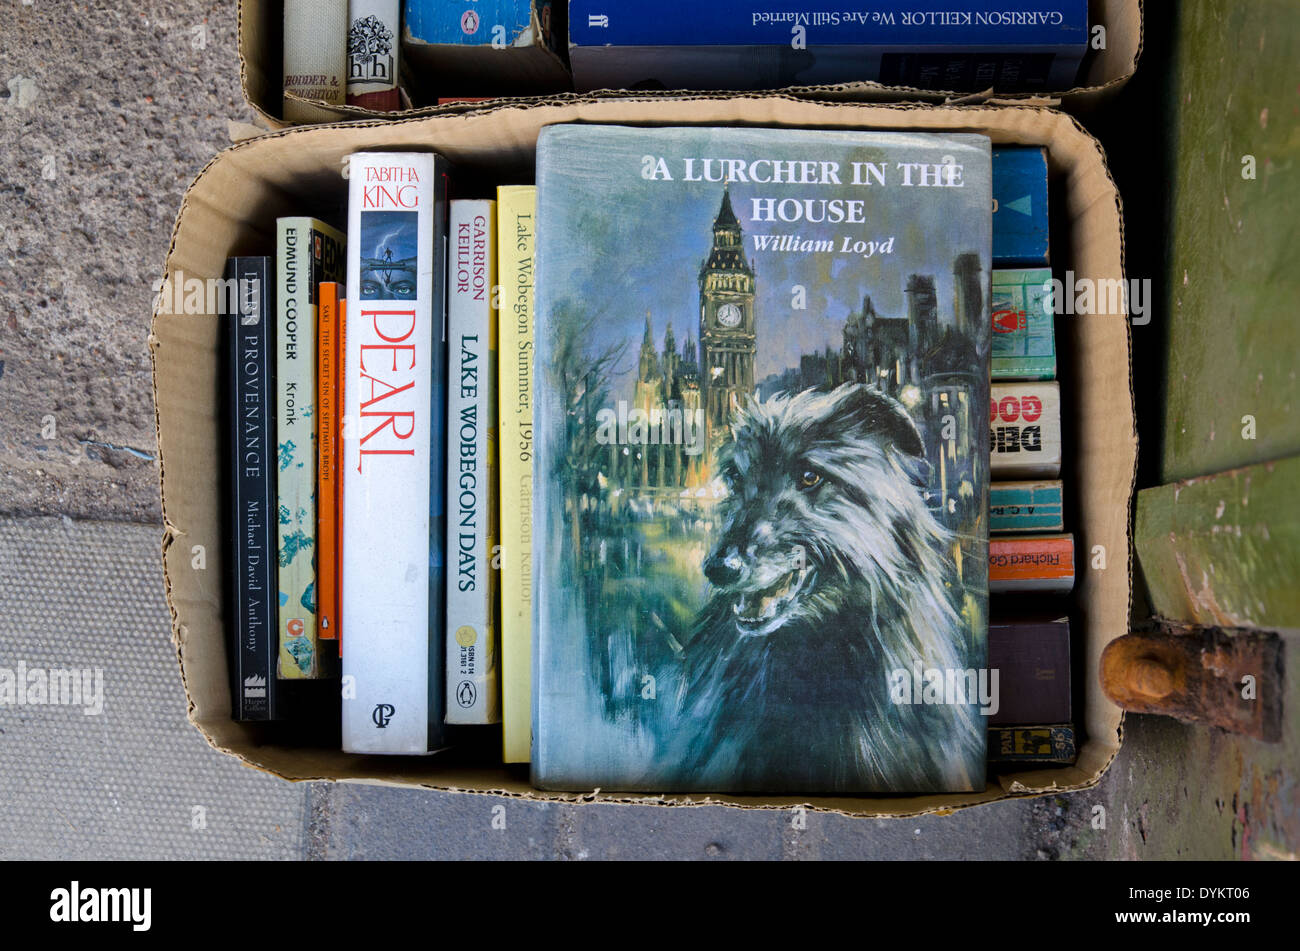 'A Lurcher in the House' by William Loyd in a box of books outside a secondhand bookshop in Edinburgh. - Stock Image